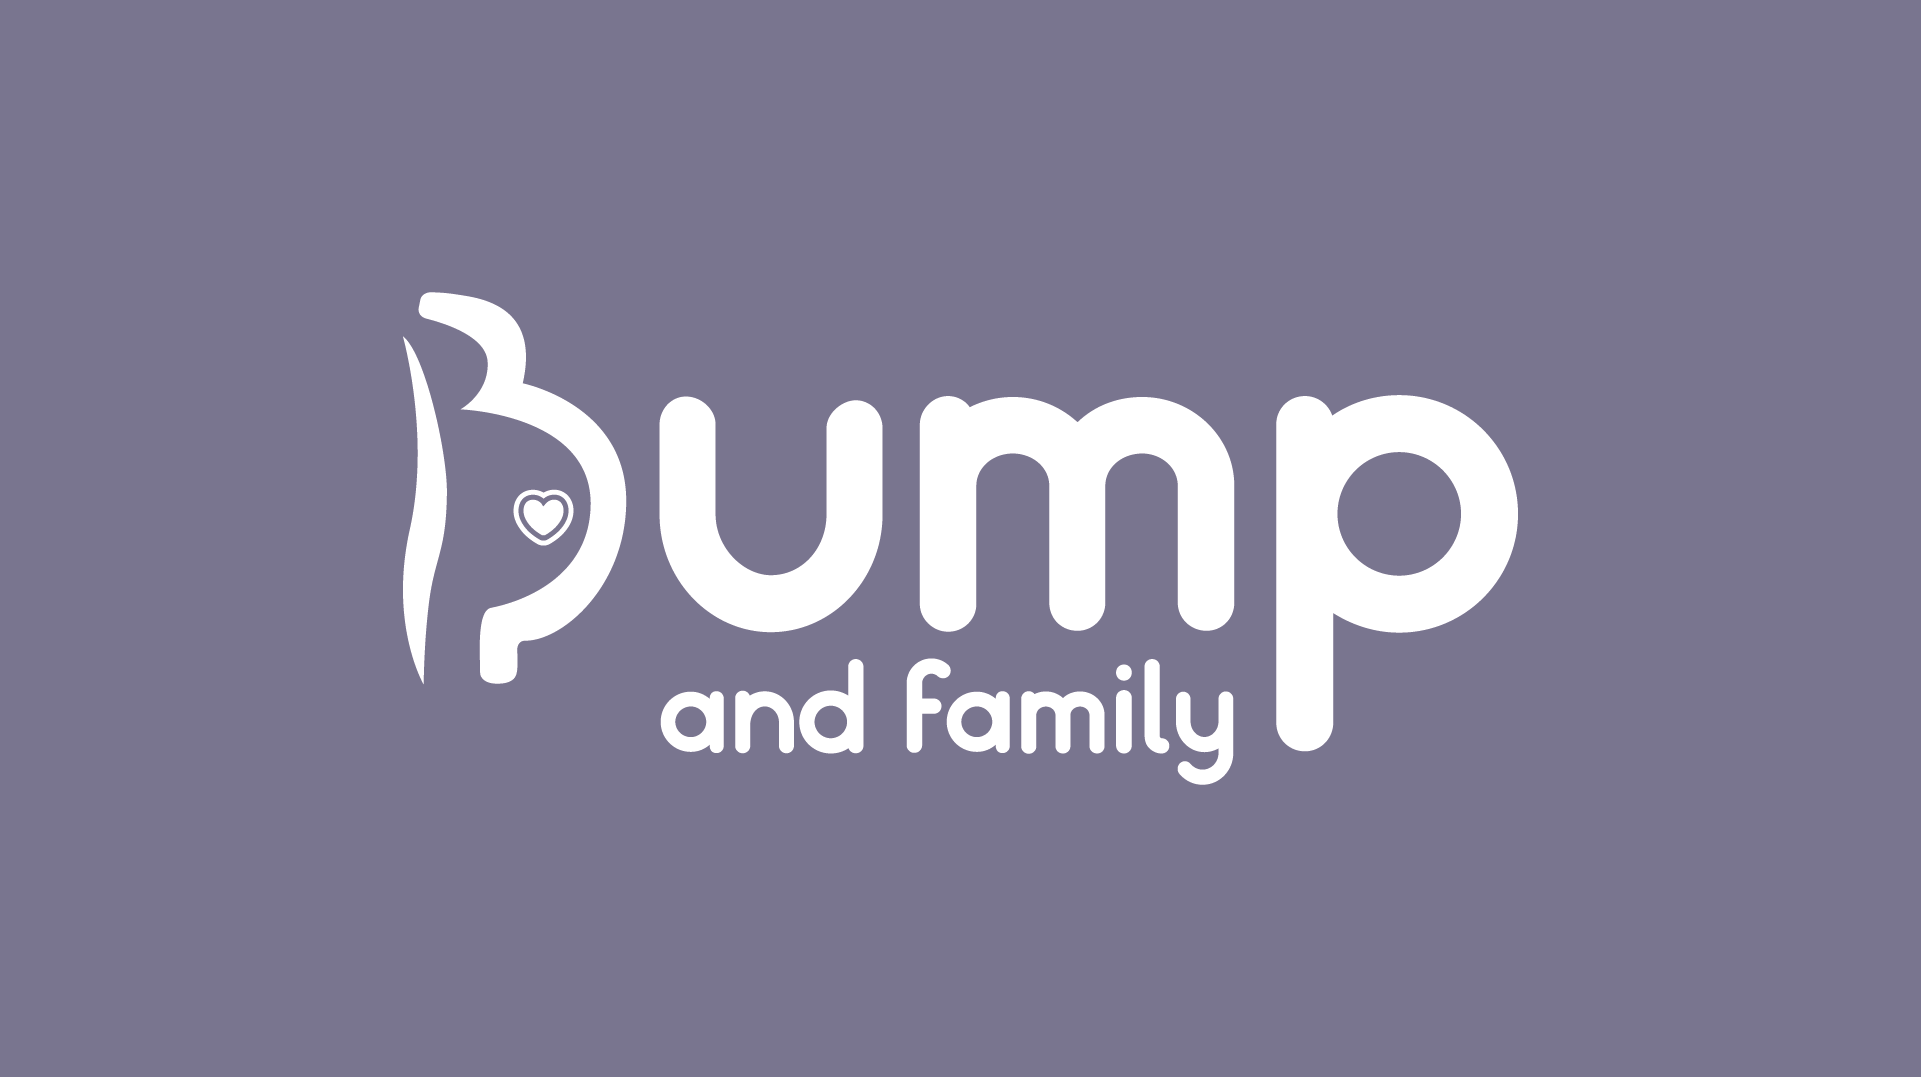 bump and family logo